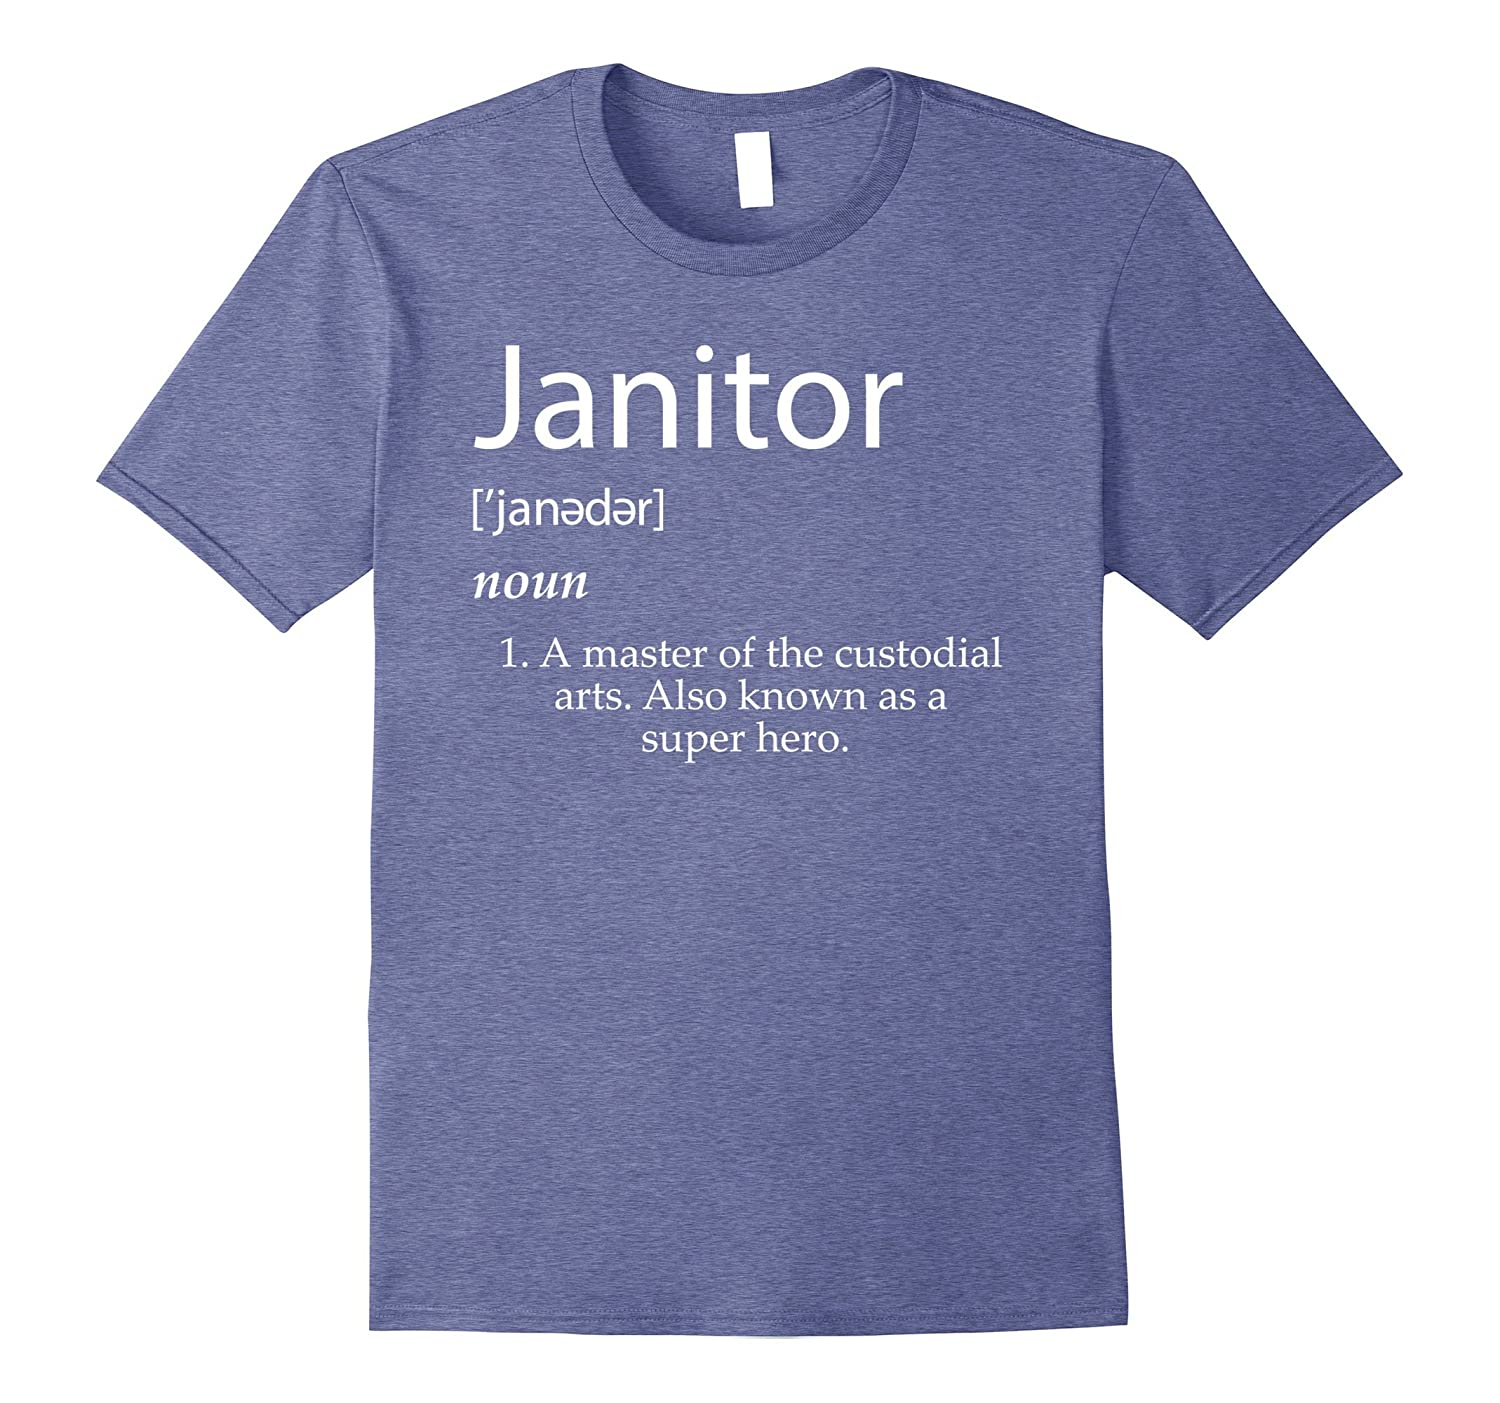 janitor definition shirt best janitorial duties custodian th